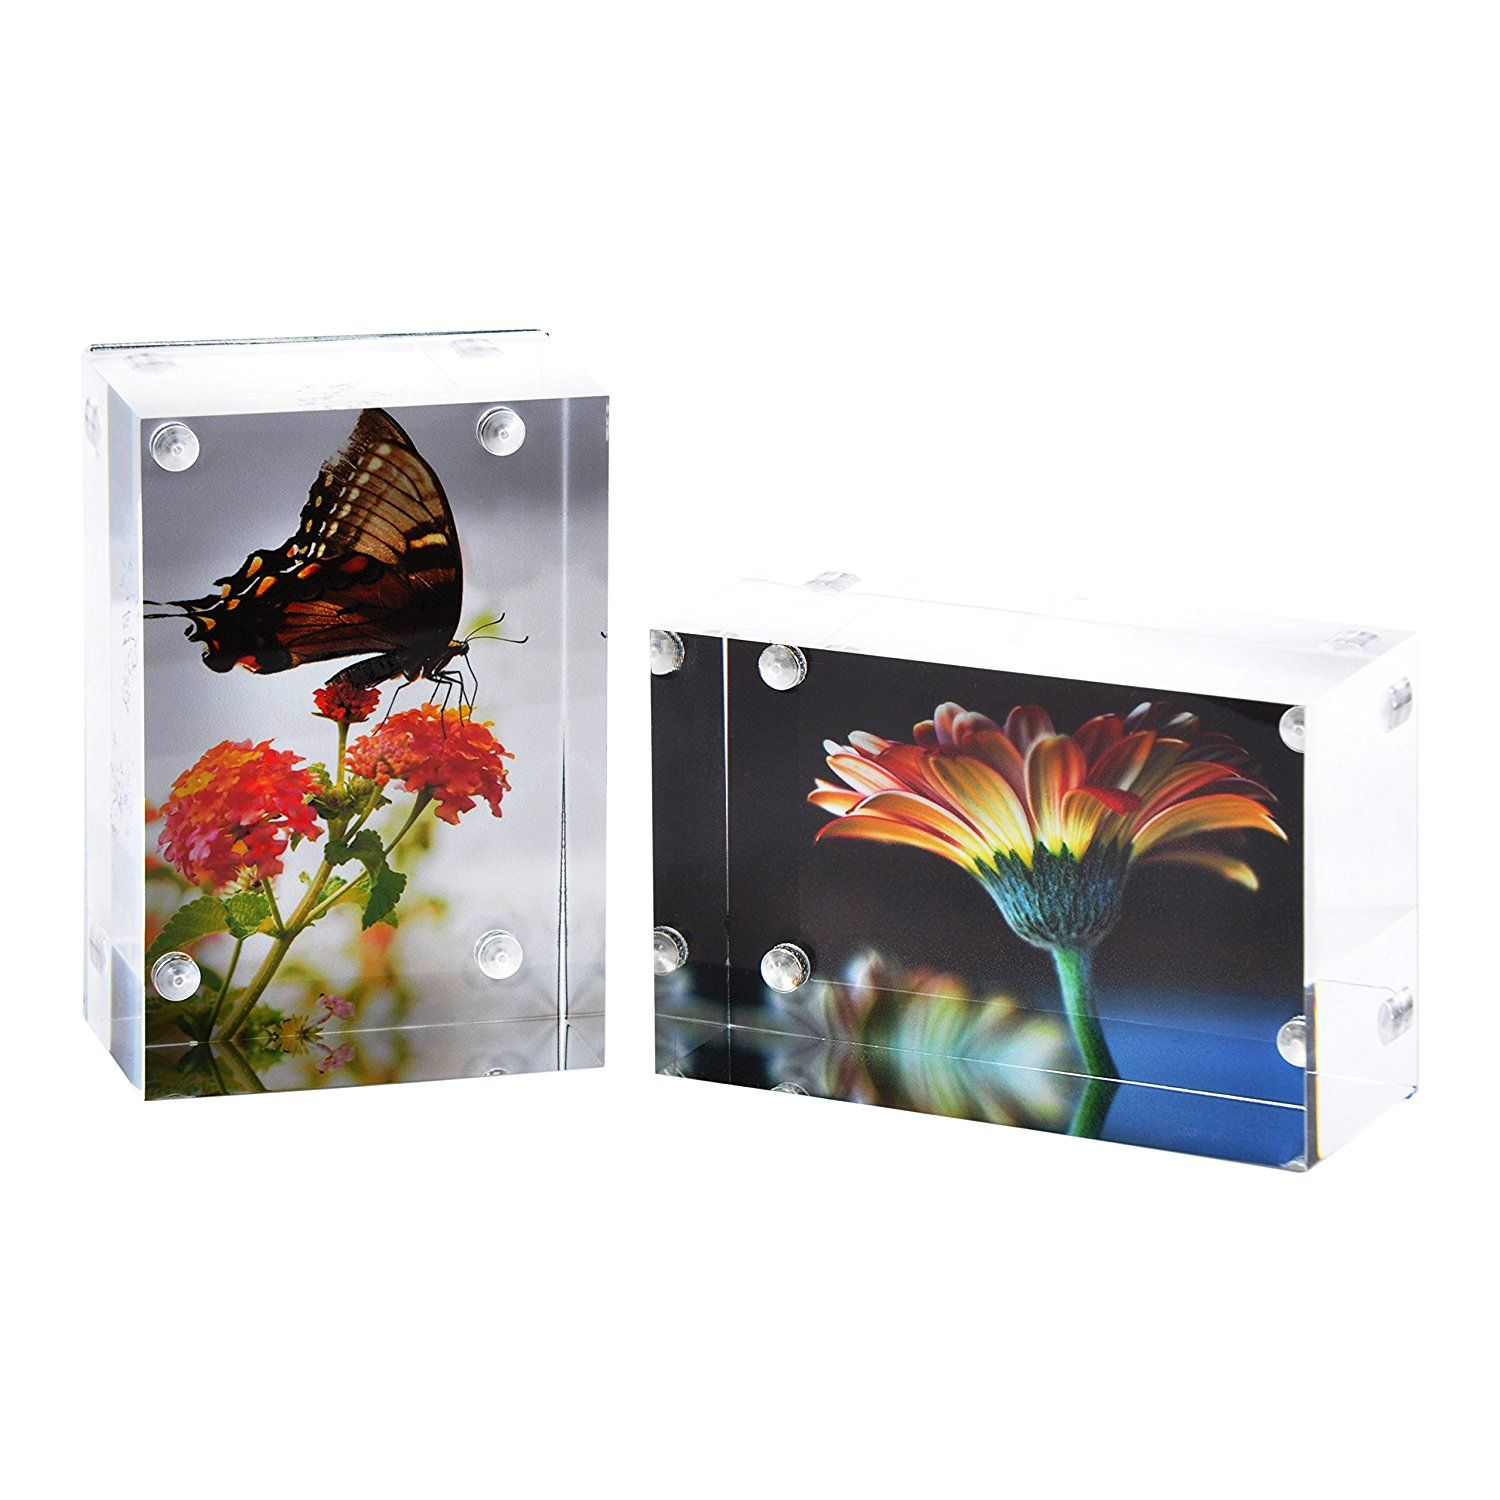 2 Pk Wallet Sized Magnetic Photo Frame Elegantly Display Photos In Home